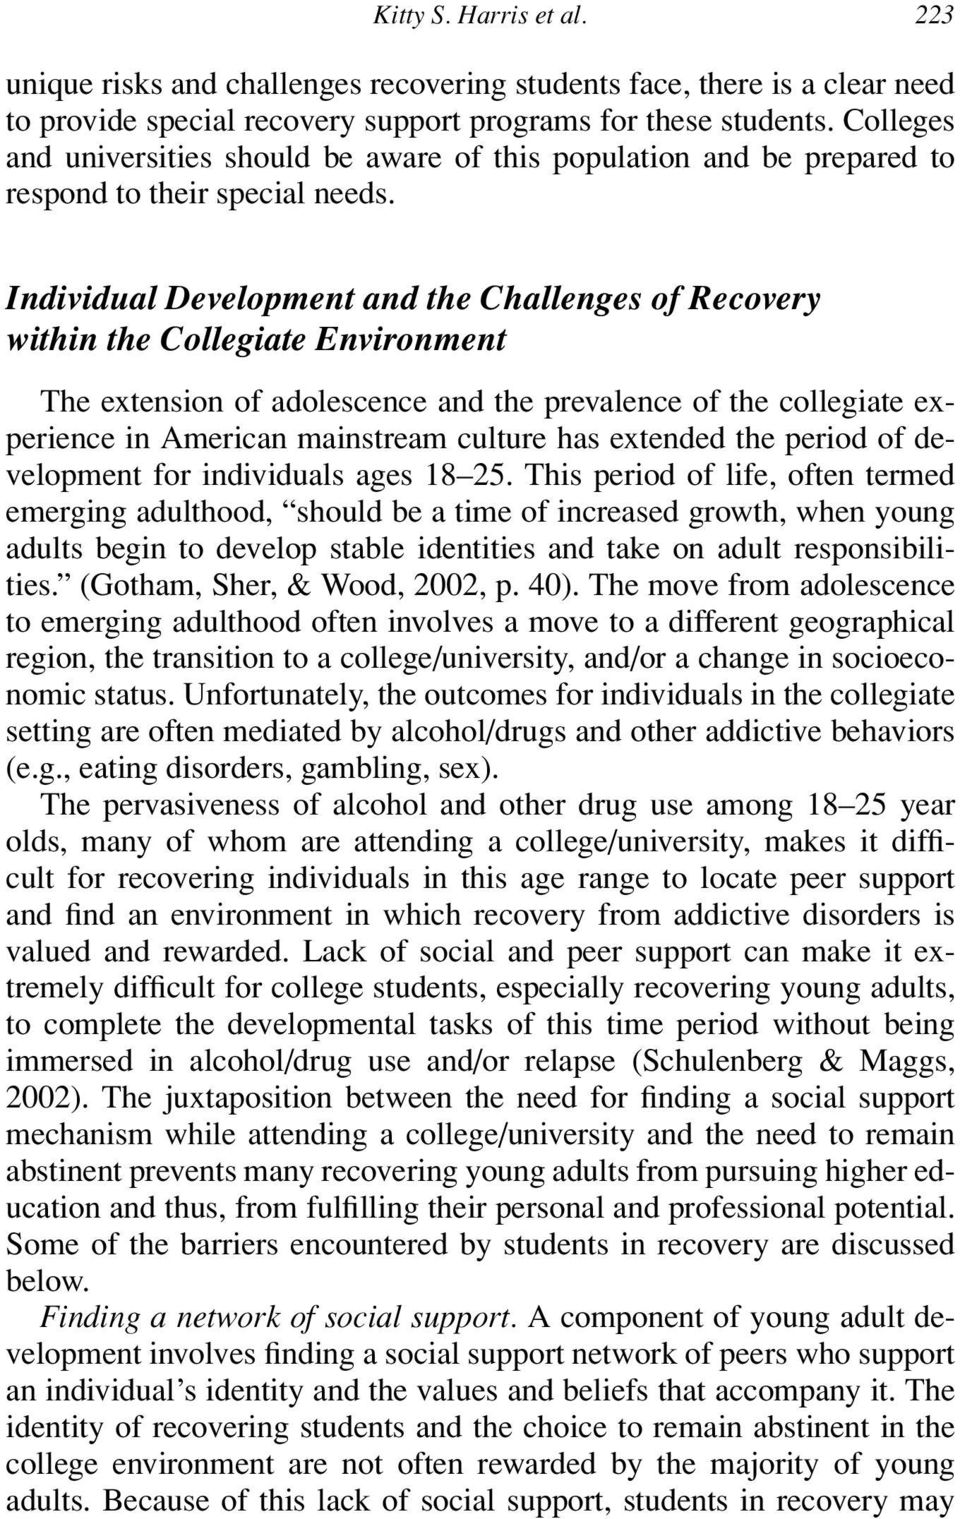 Individual Development and the Challenges of Recovery within the Collegiate Environment The extension of adolescence and the prevalence of the collegiate experience in American mainstream culture has